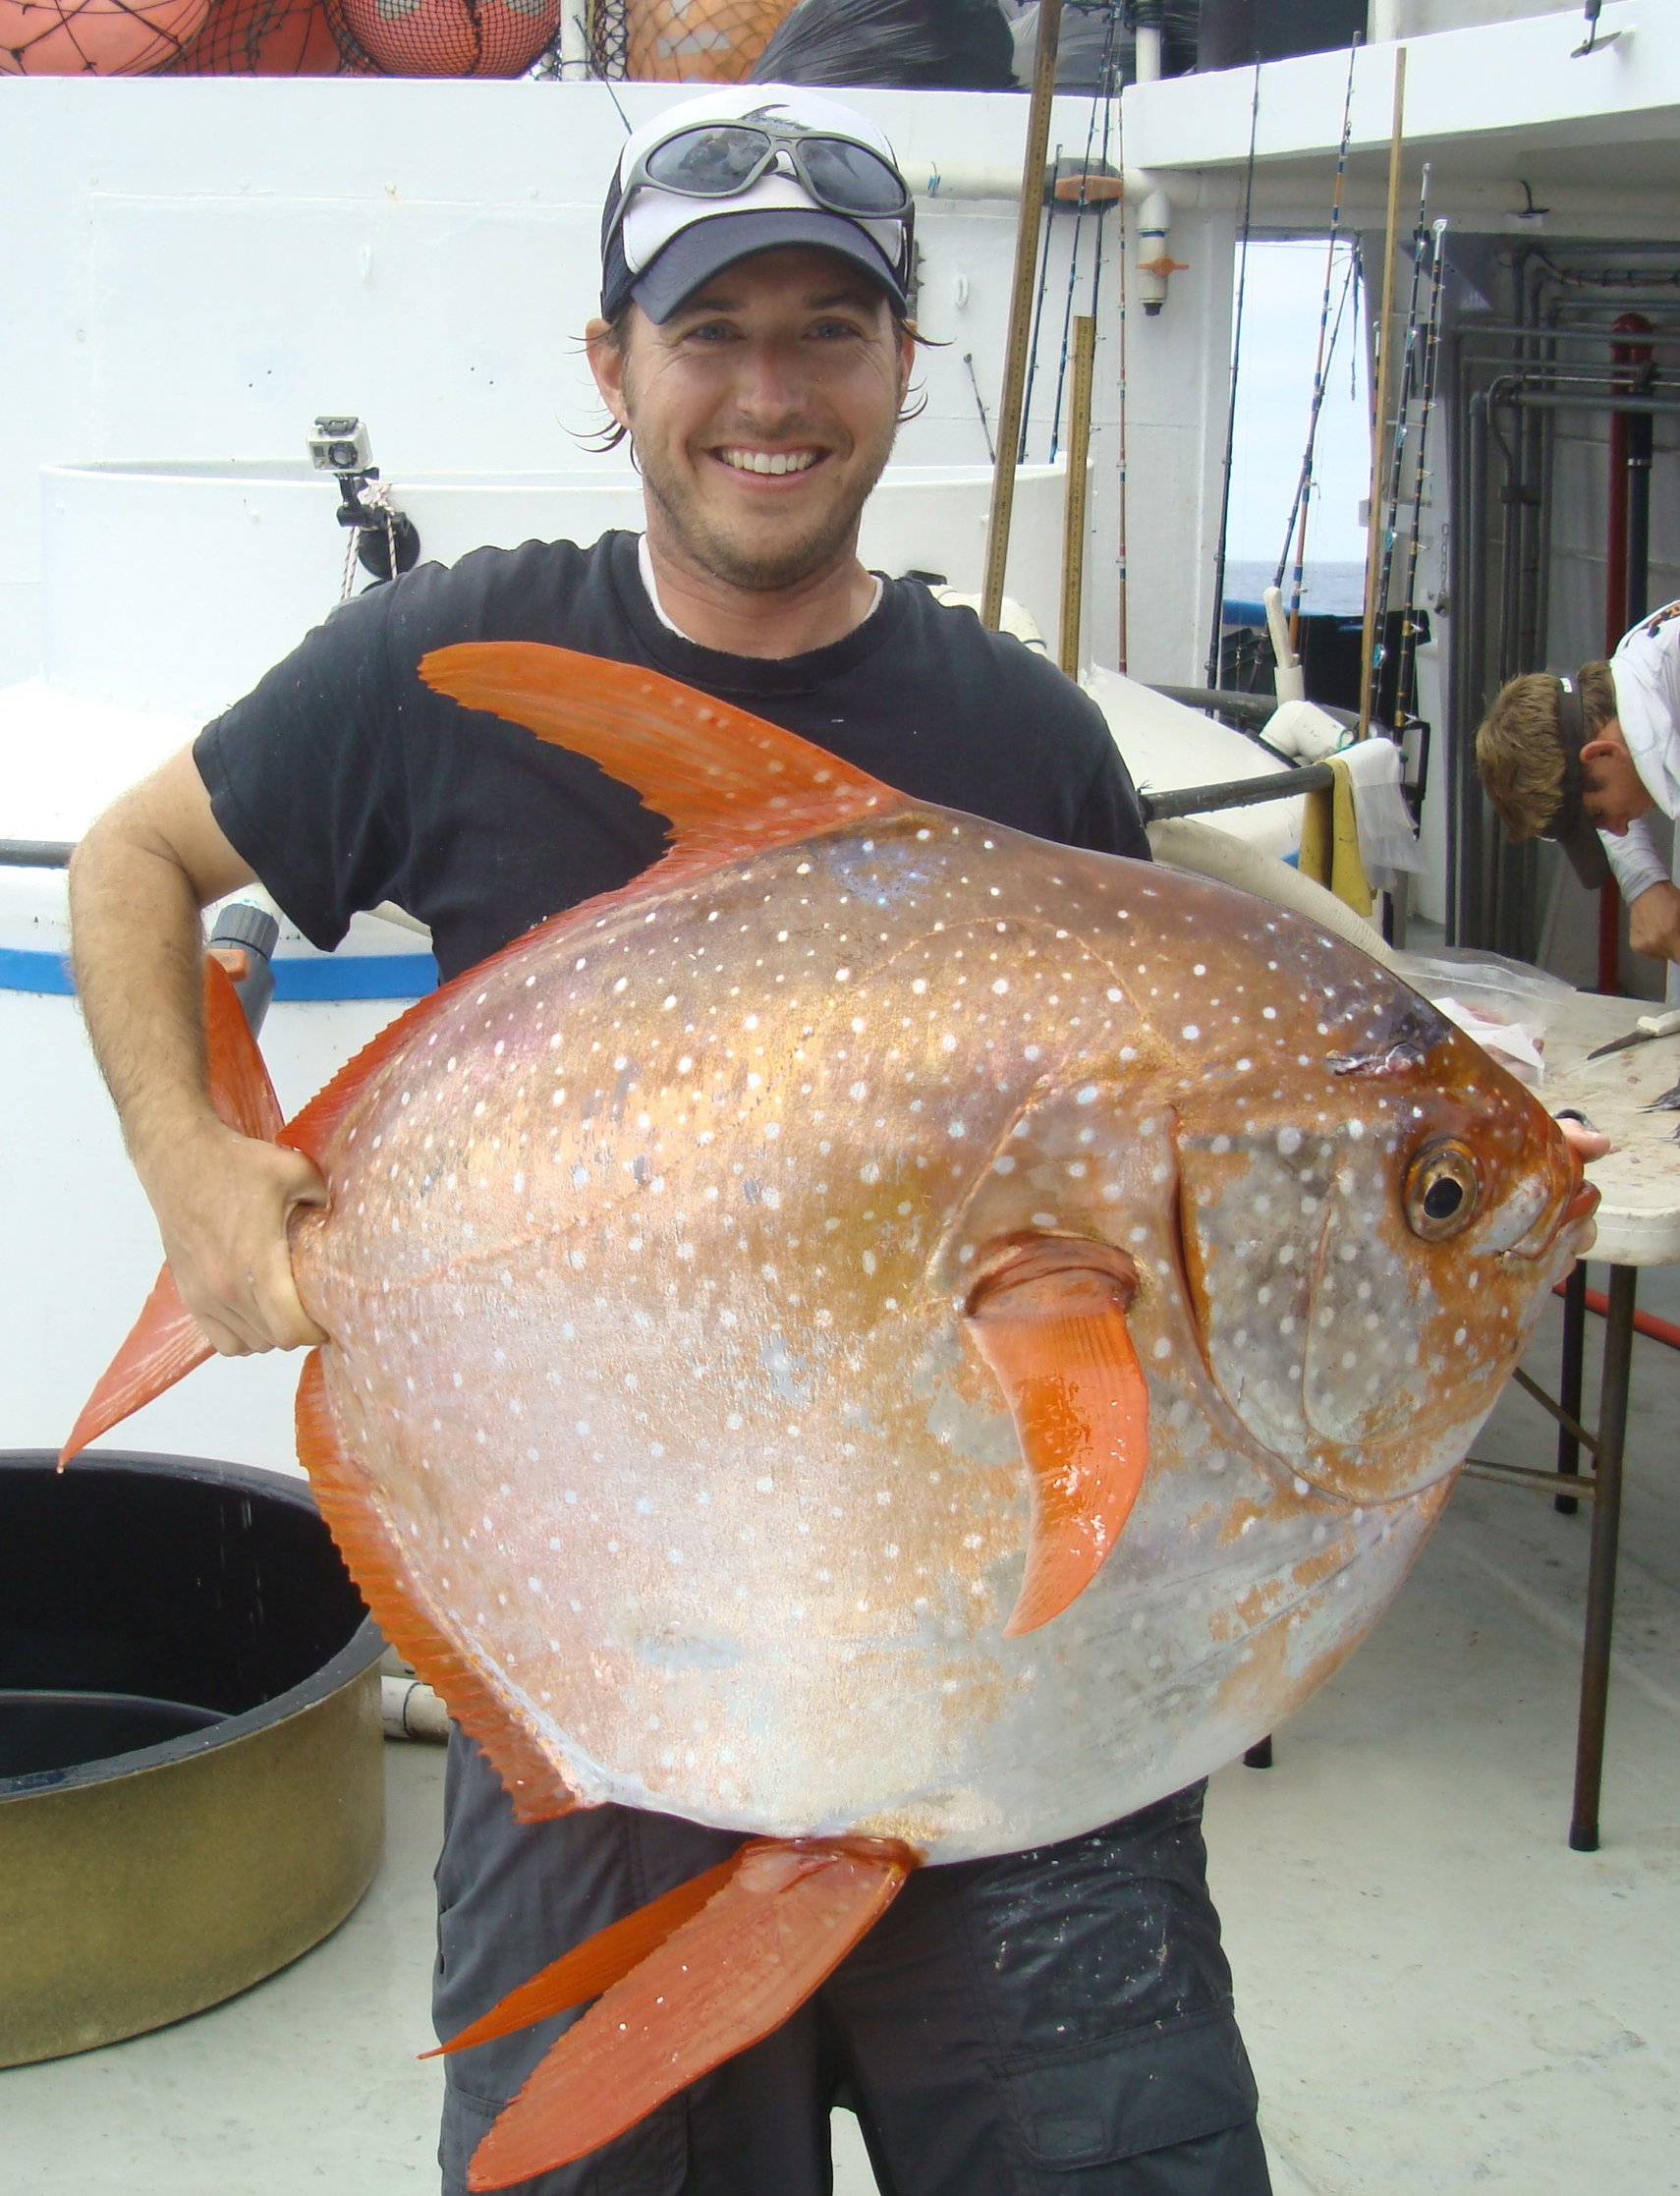 US NOAA biologist Nicholas Wegner holding an opah fish (credit: NOAA Fisheries/Southwest Fisheries Science Center)